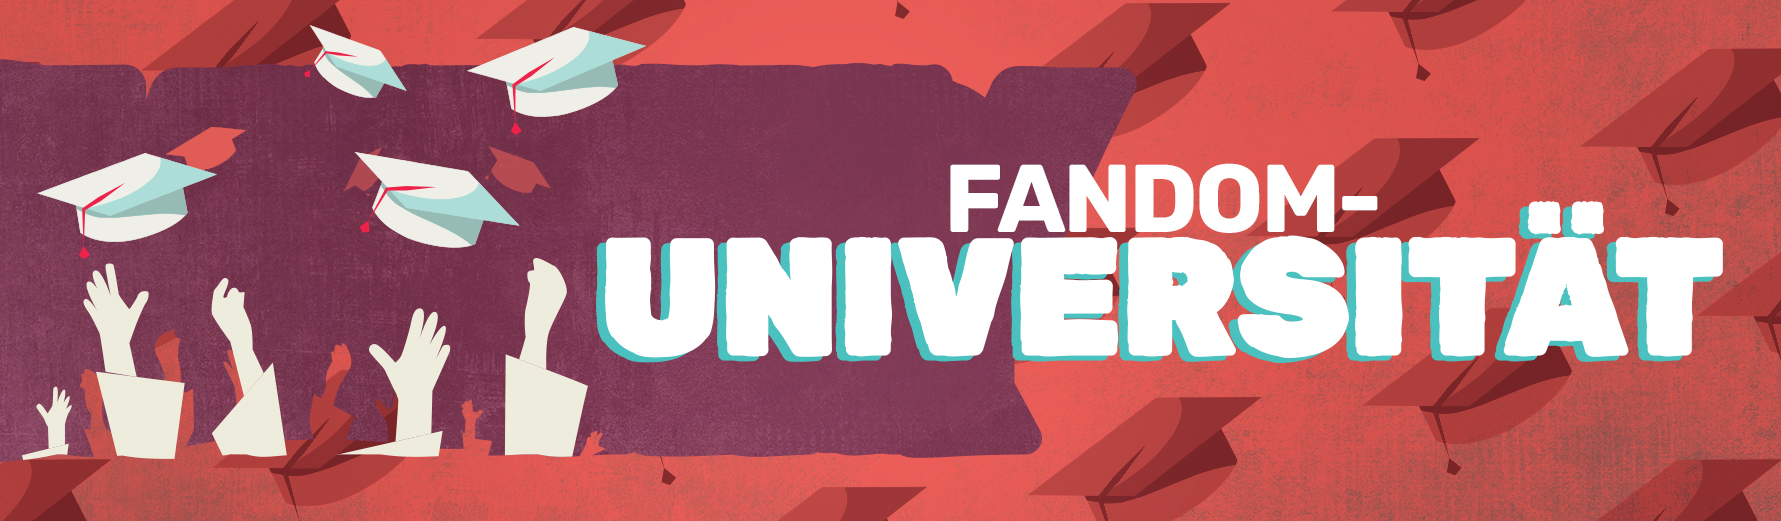 Fandom-Universität Header